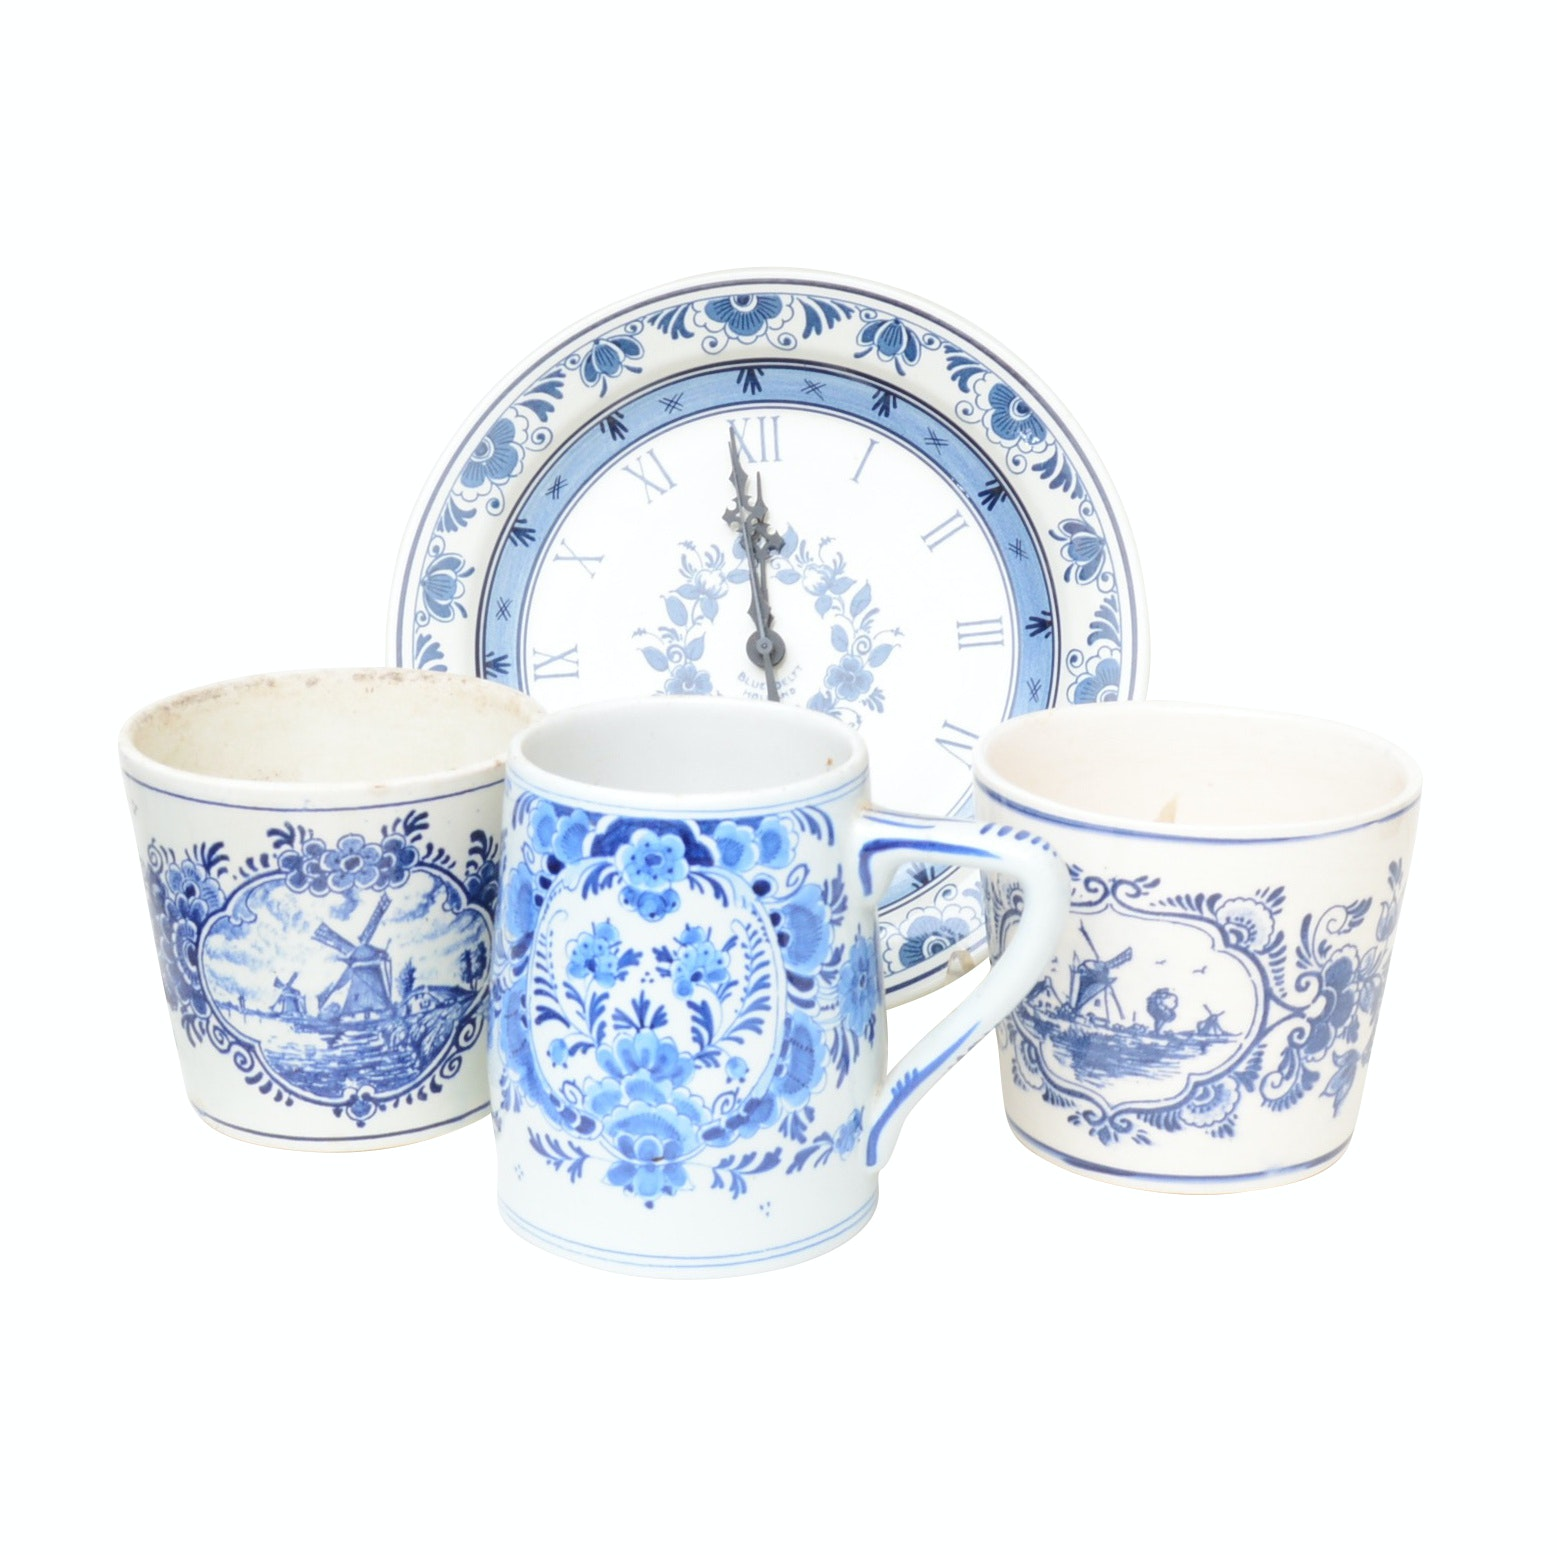 Hand Painted Blue Delft Vases and Clock